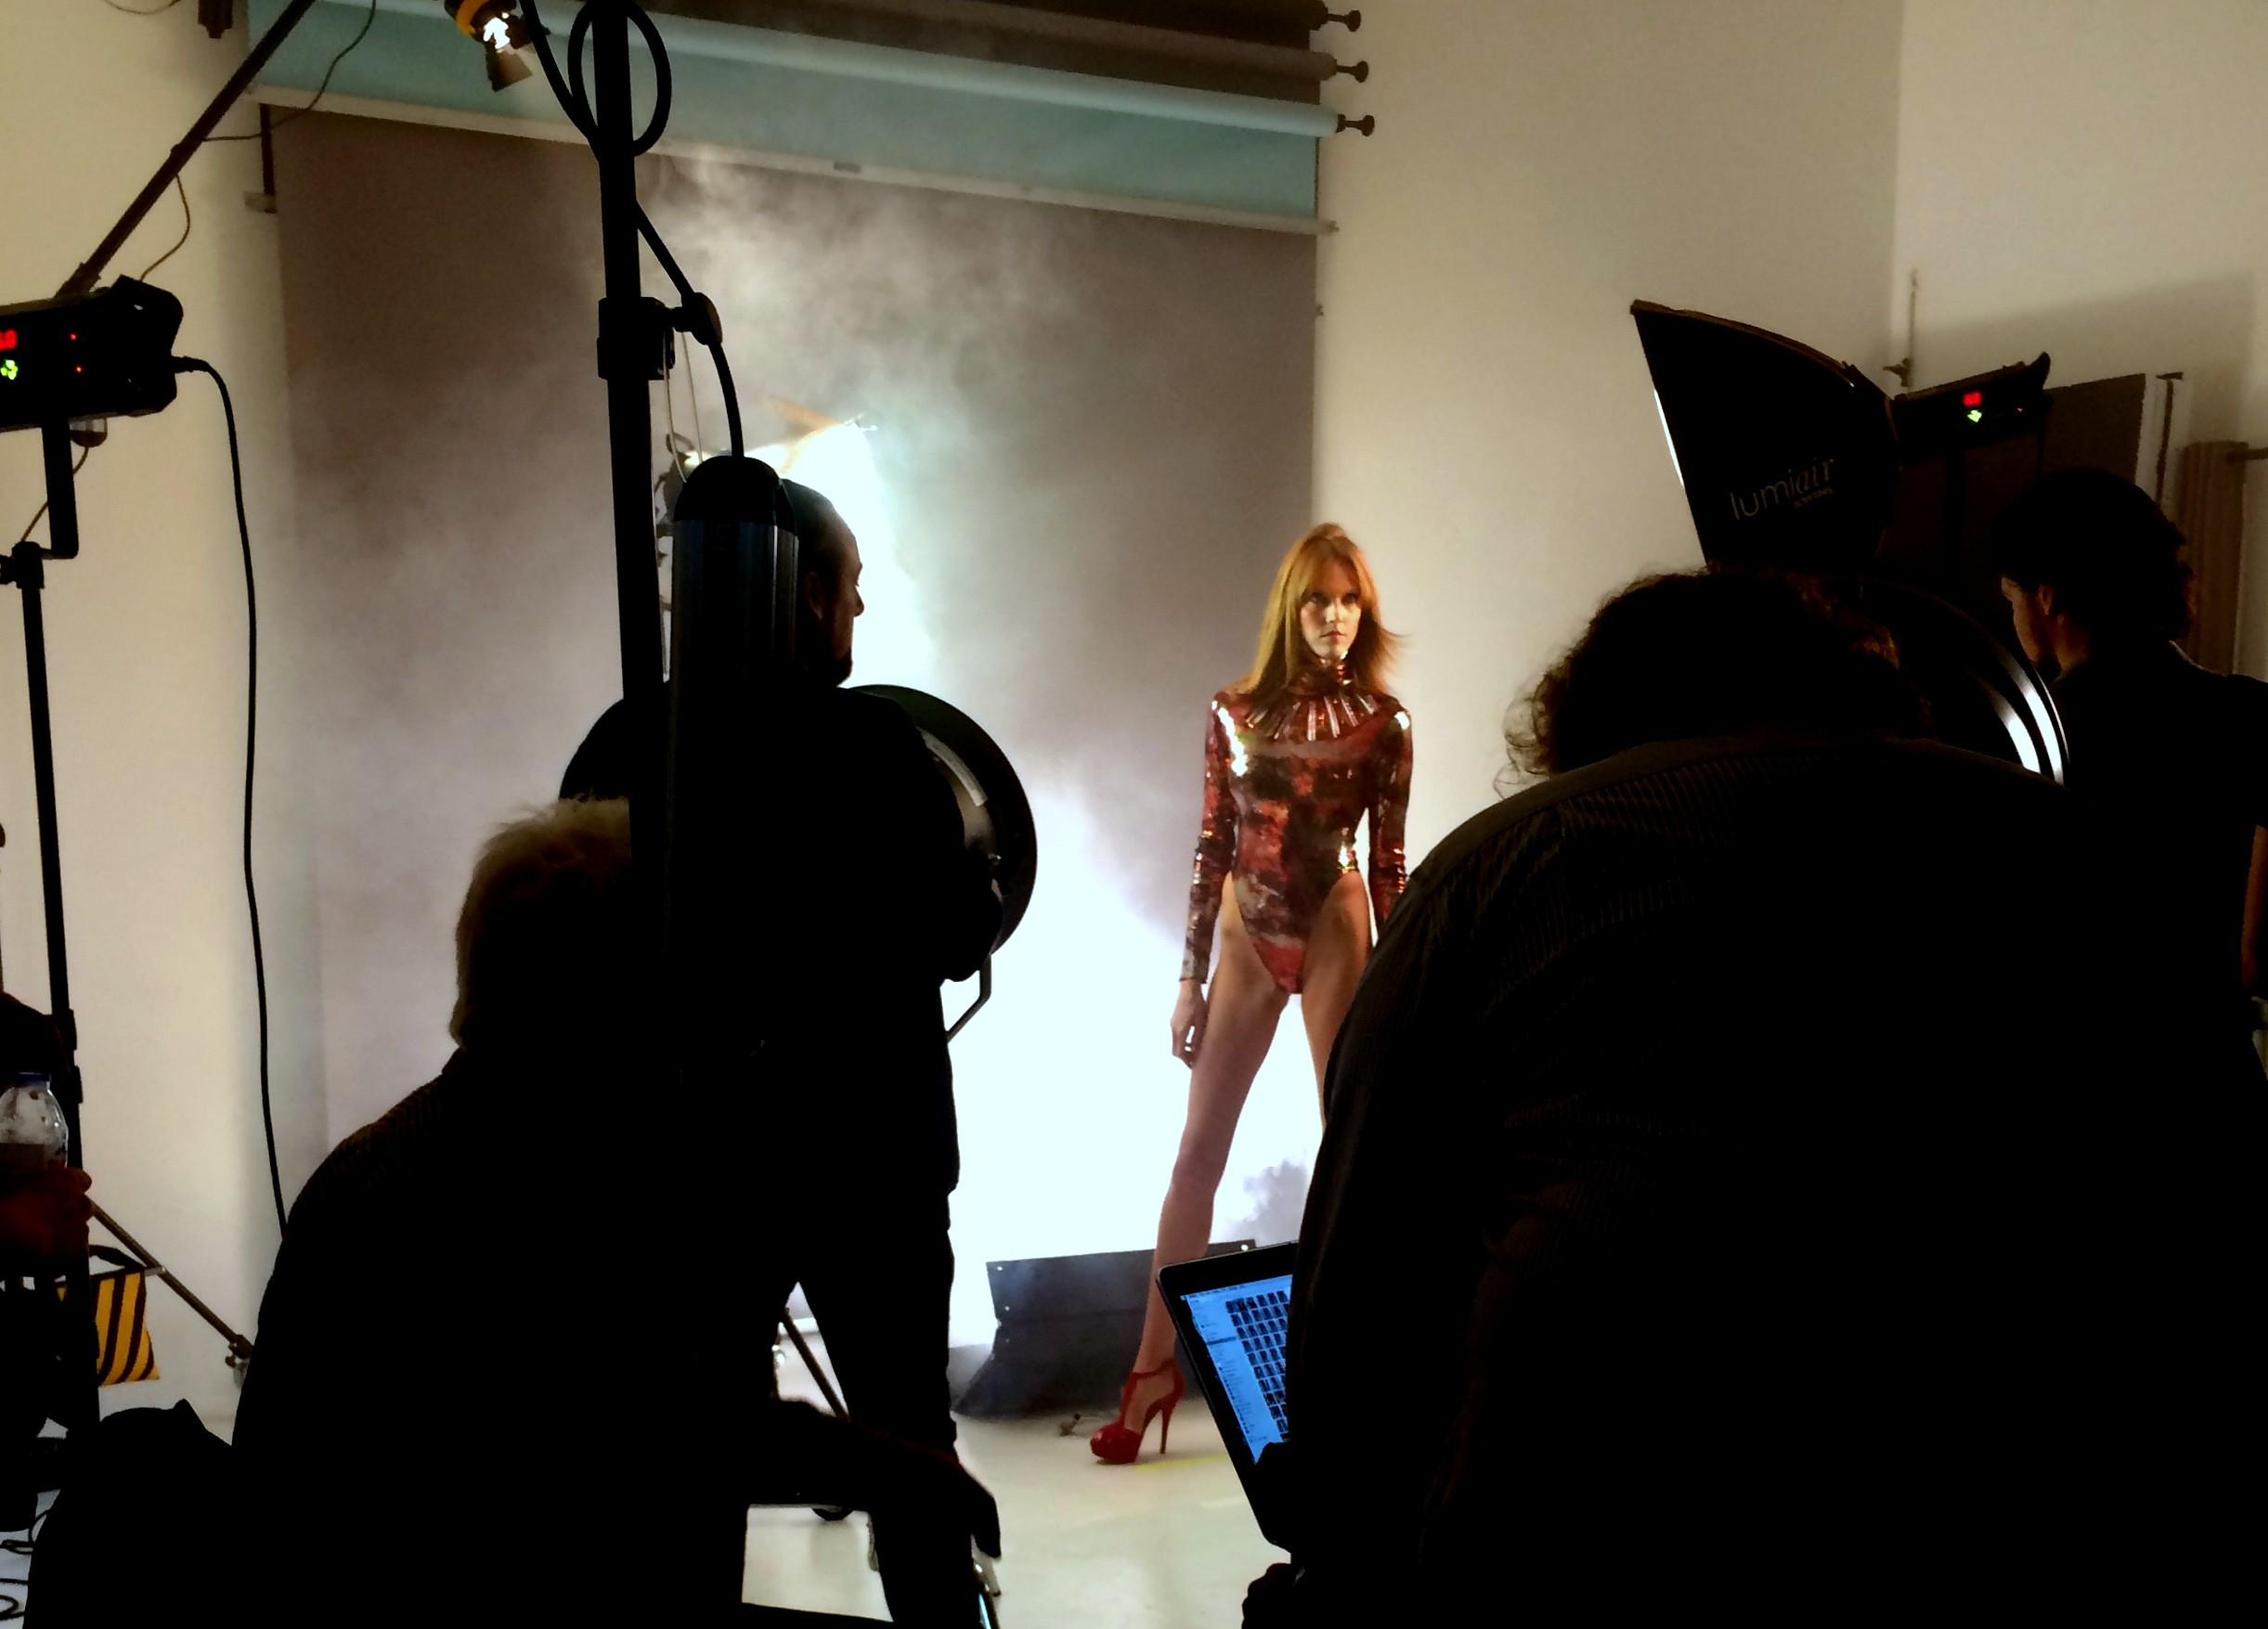 WLS the Host shoot